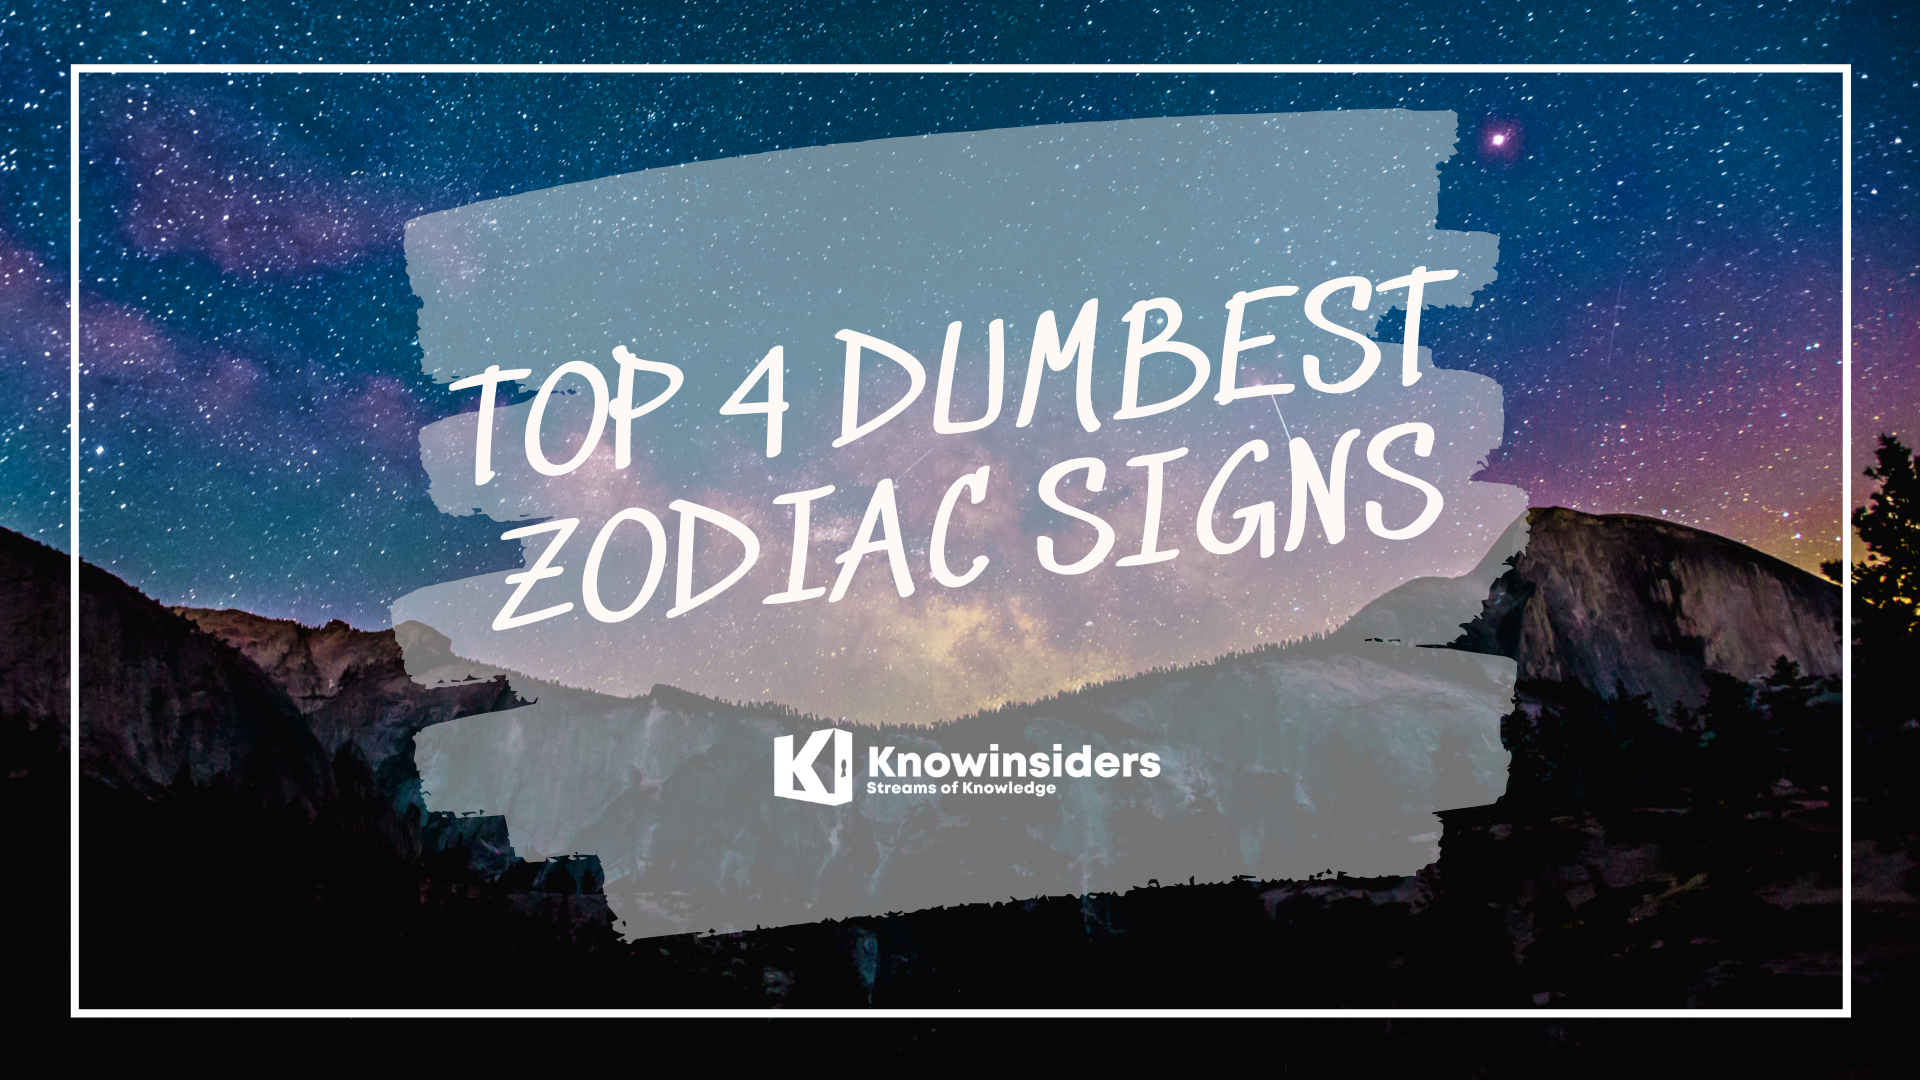 Top 4 Dumbest Zodiac Signs According To Astrology